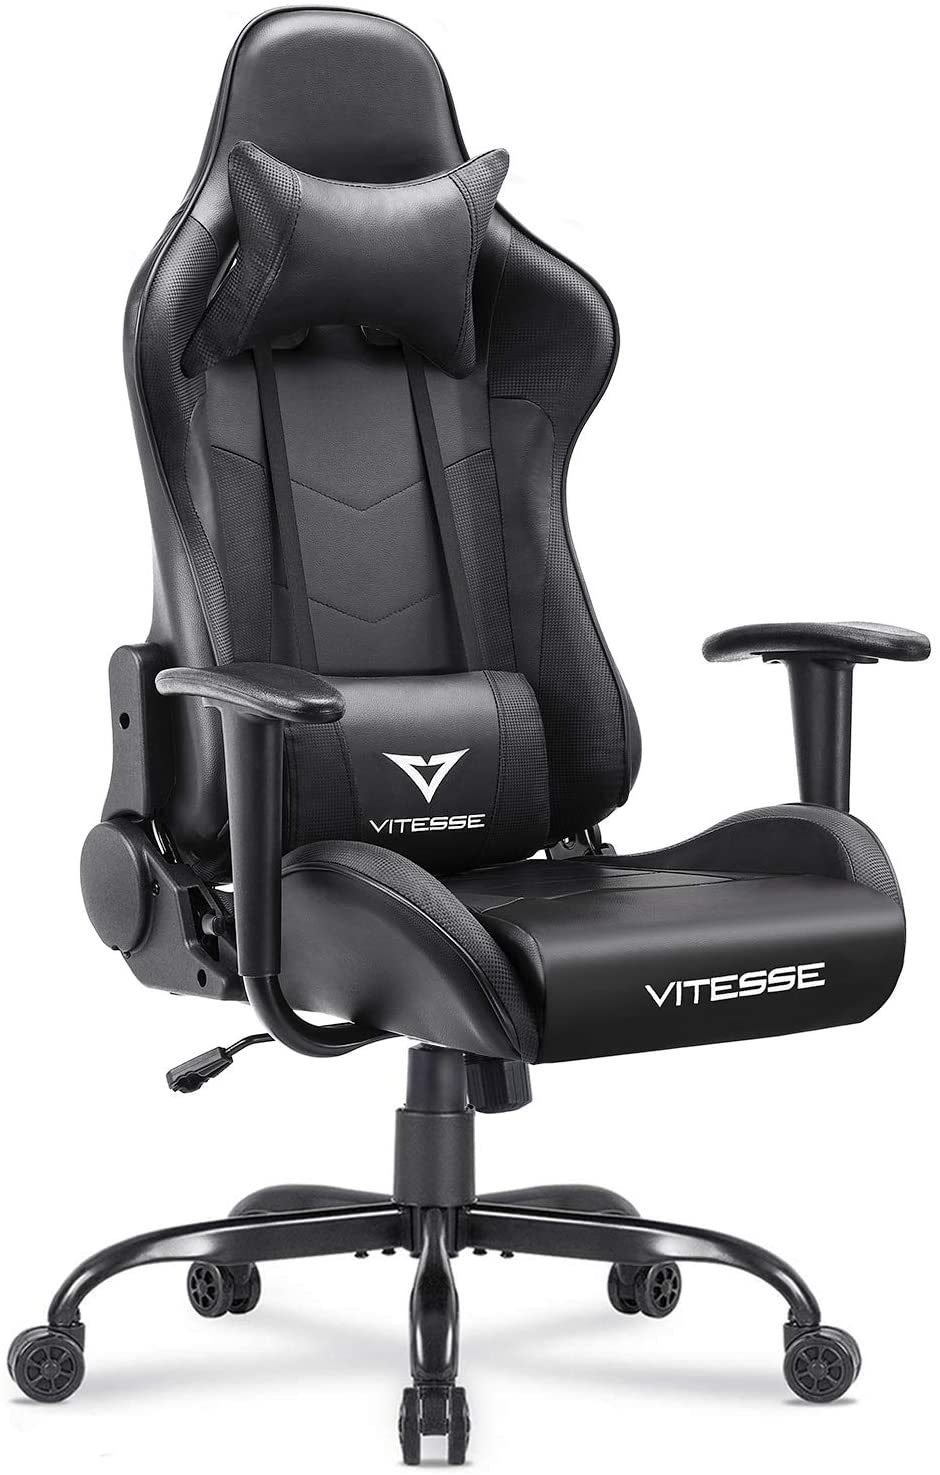 Vitesse Gaming Chair